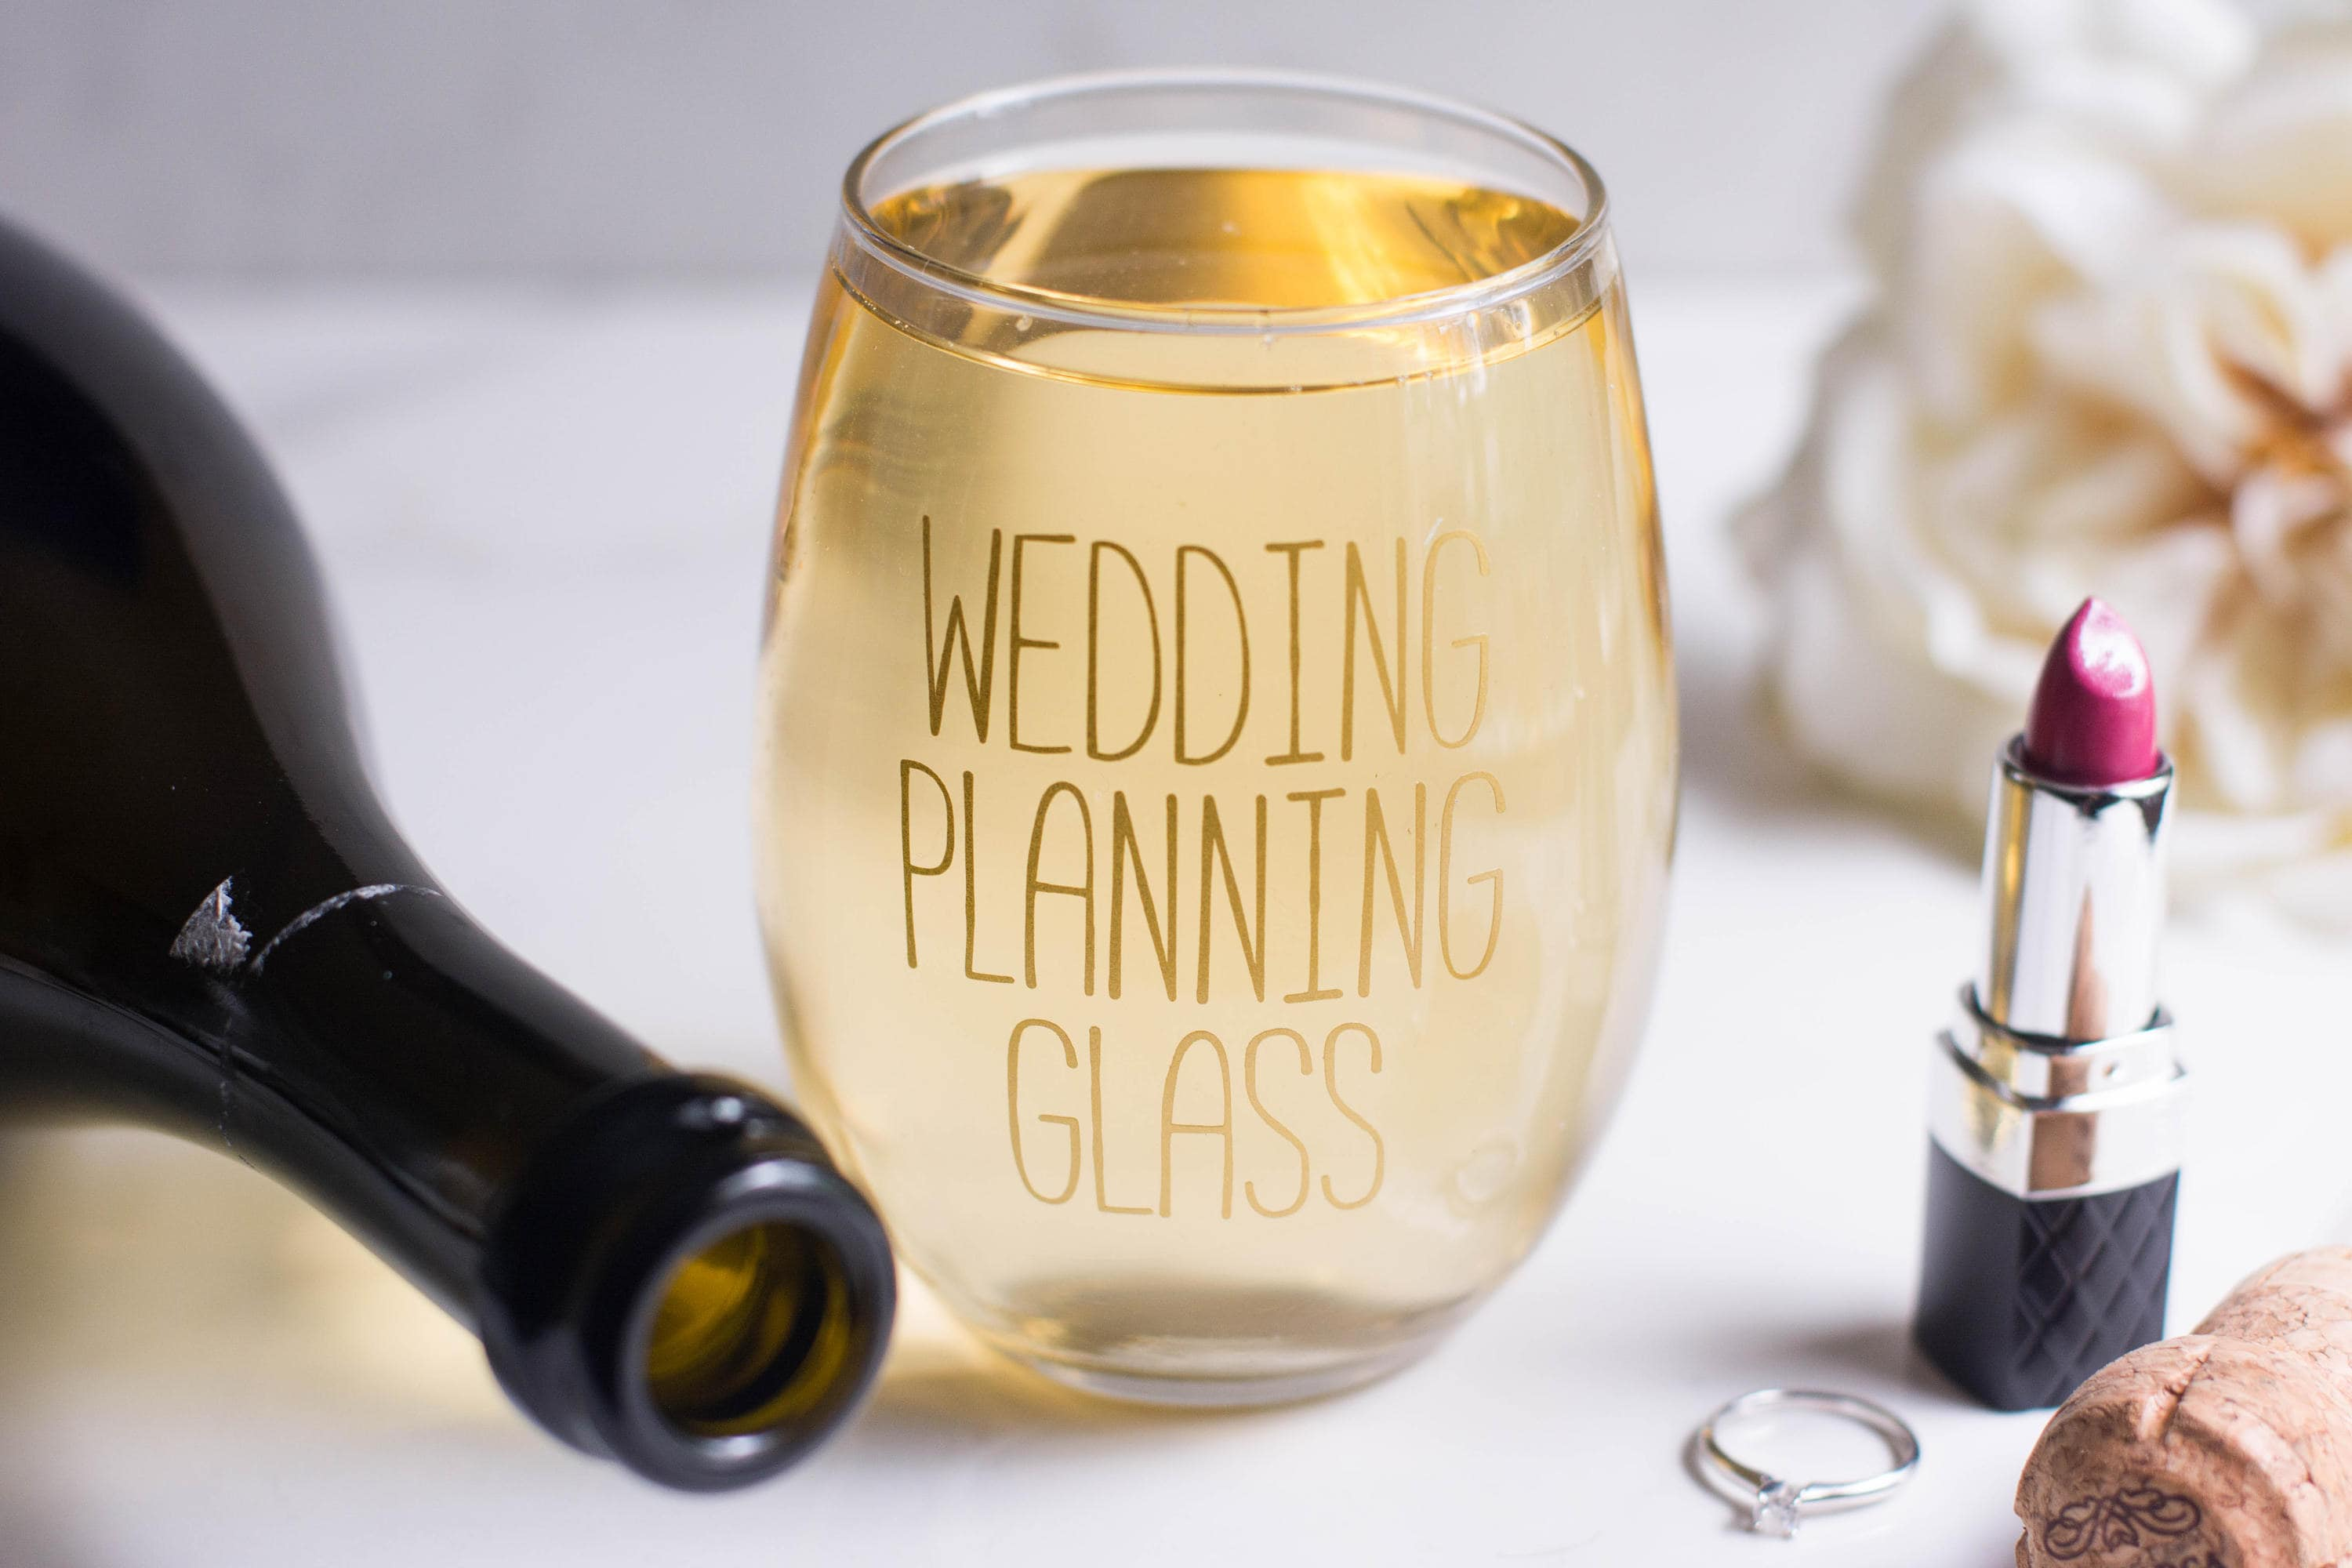 Gifts For Wedding Planning: Wedding Planning Wine Glass Stemless Wine Glass Bride Gift